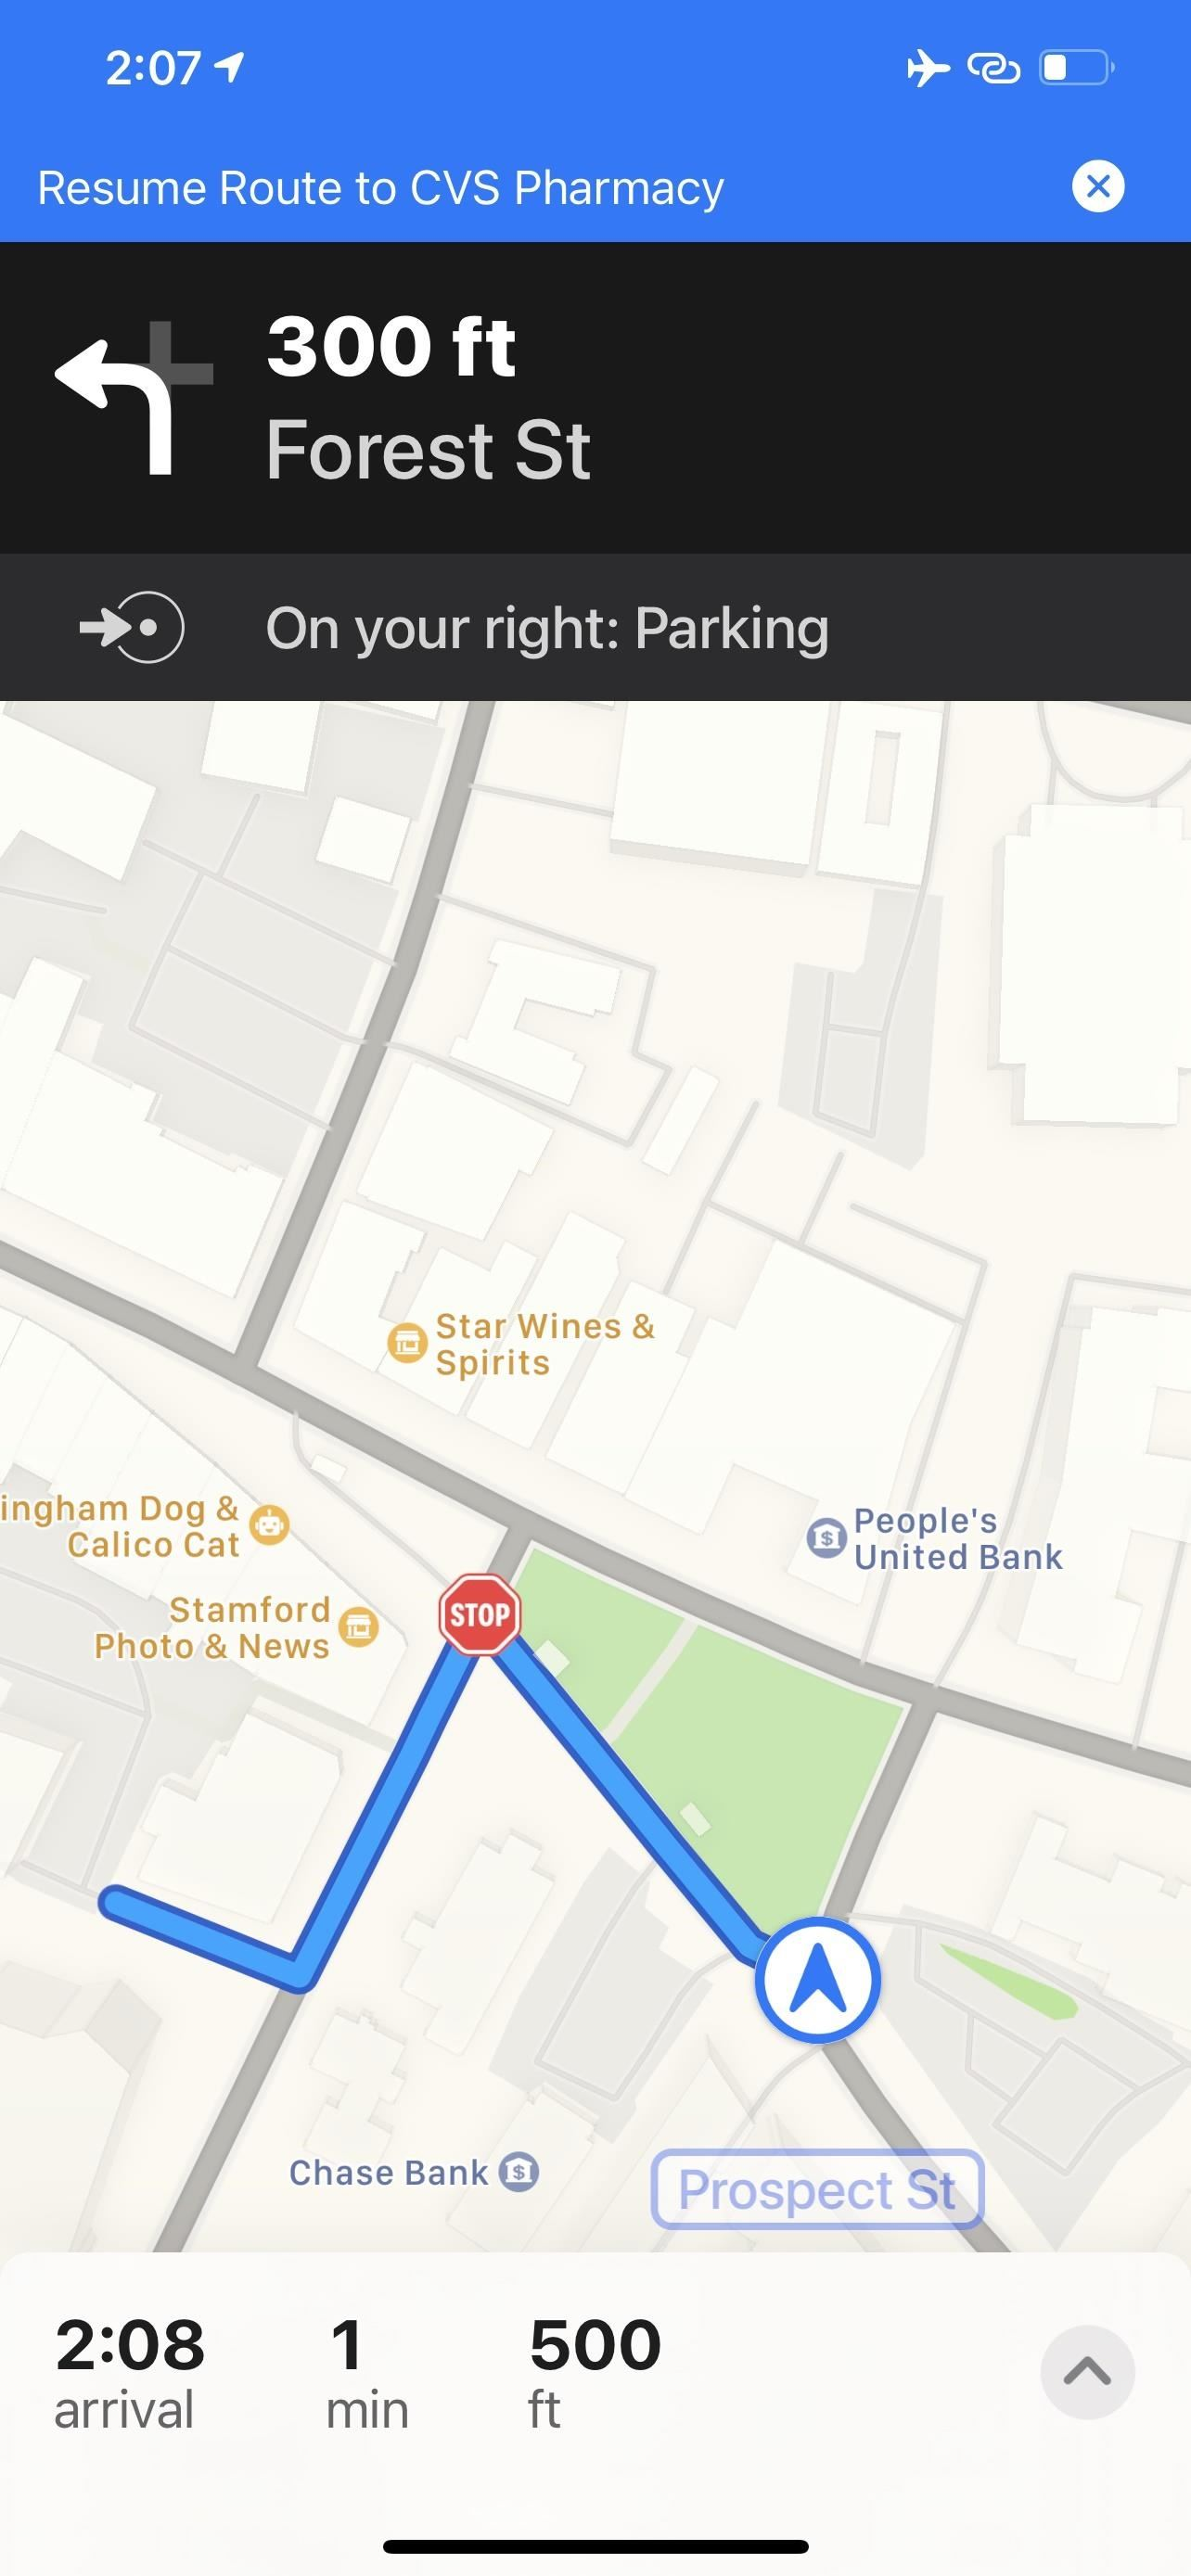 Finding Parking Just Got Easier with Apple Maps on Your iPhone